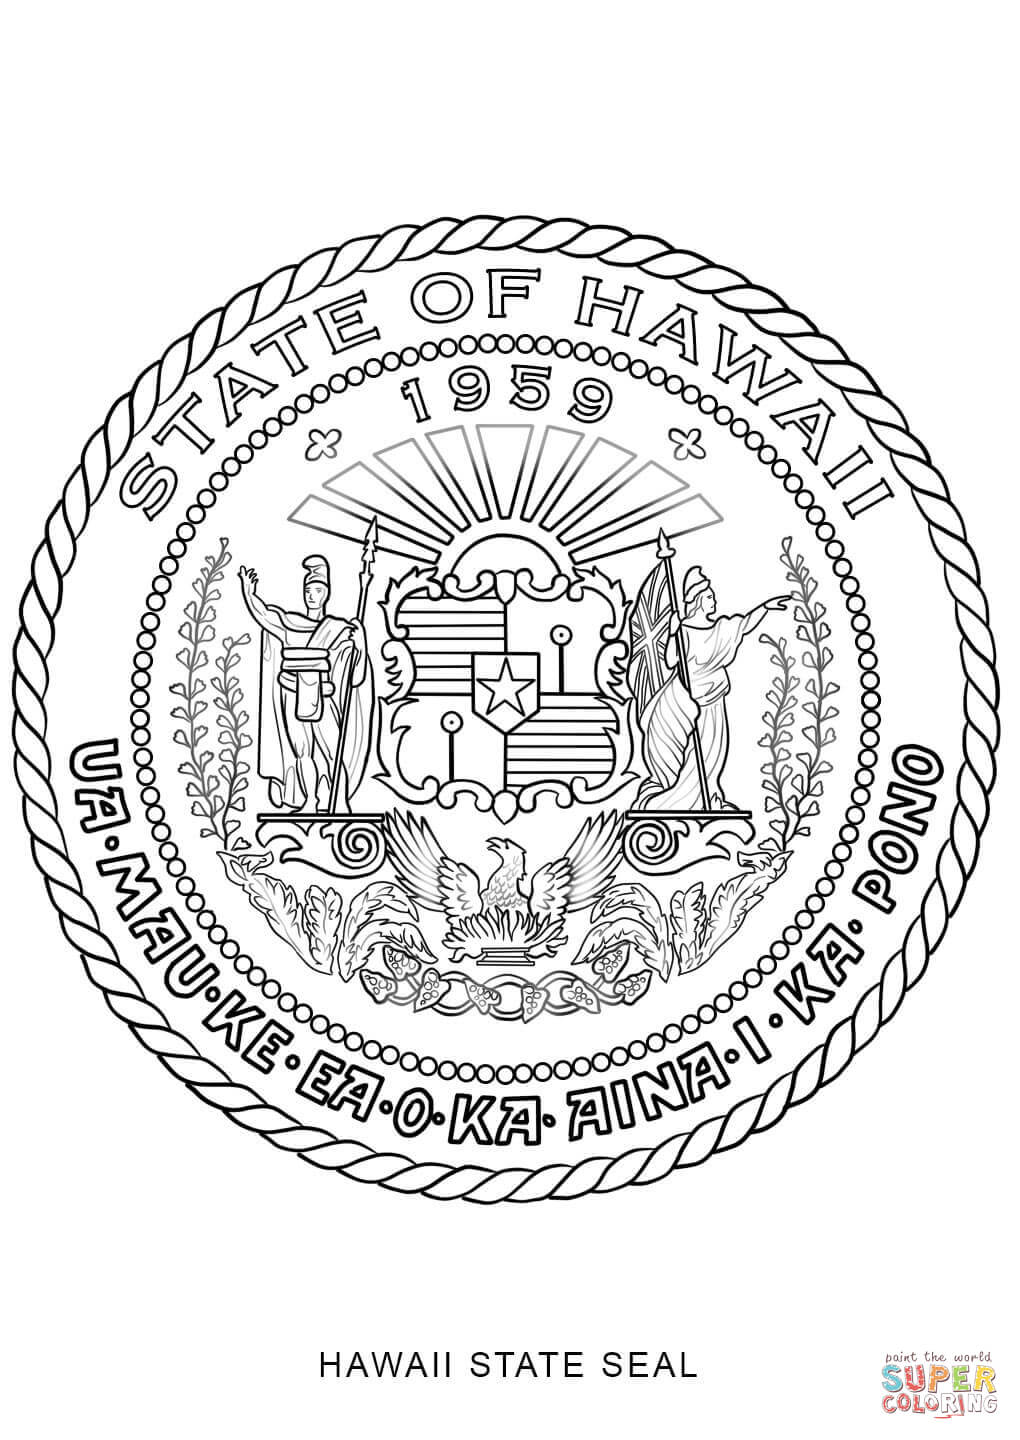 Free coloring pages hawaii - Hawaii State Seal Coloring Page Free Printable Coloring Pages